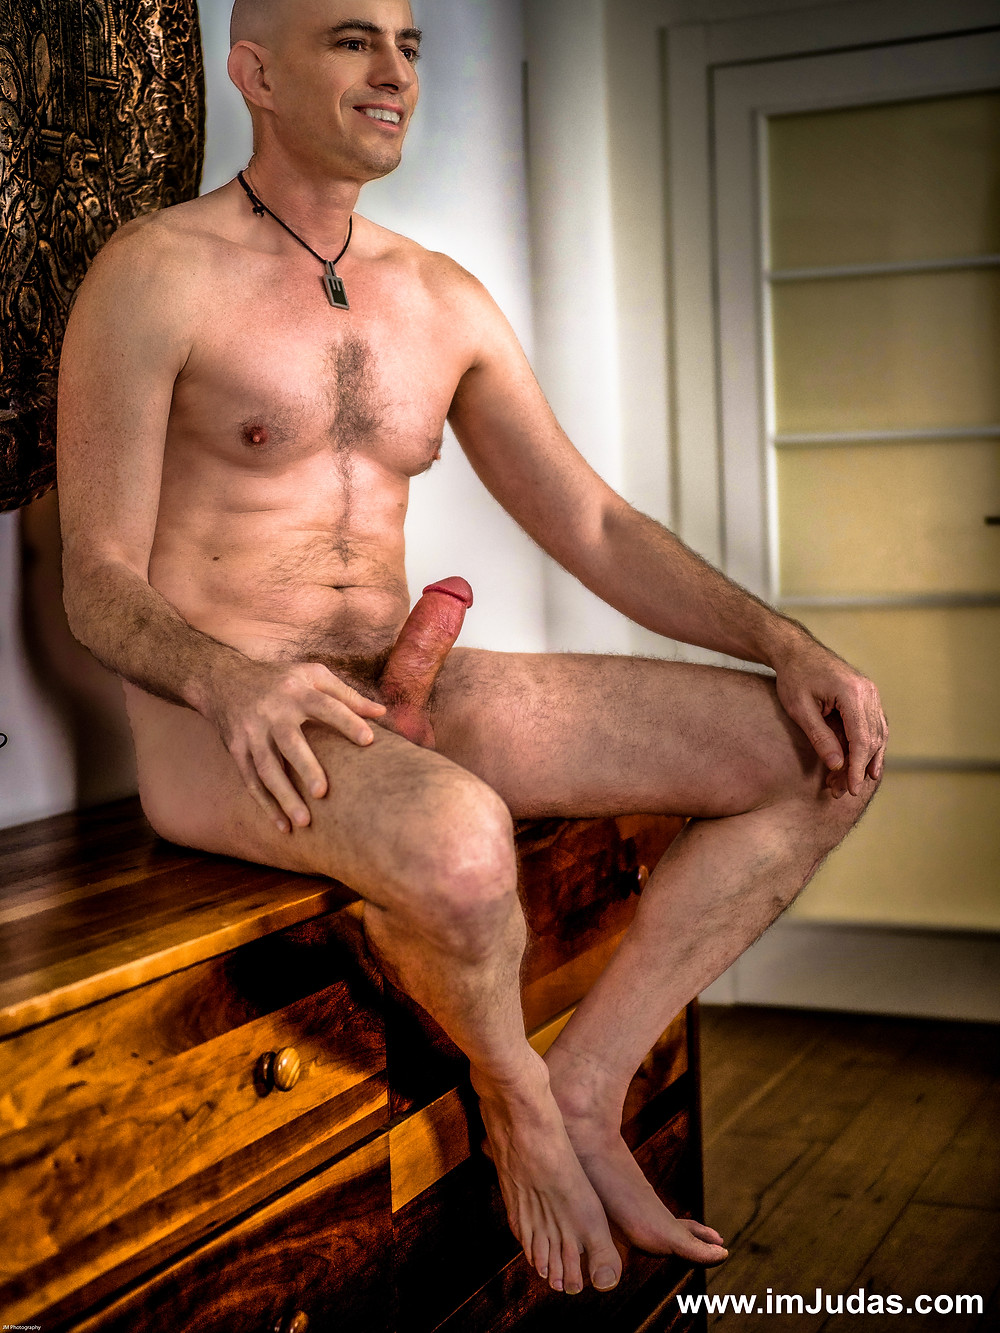 naked nude male model cock erect hard